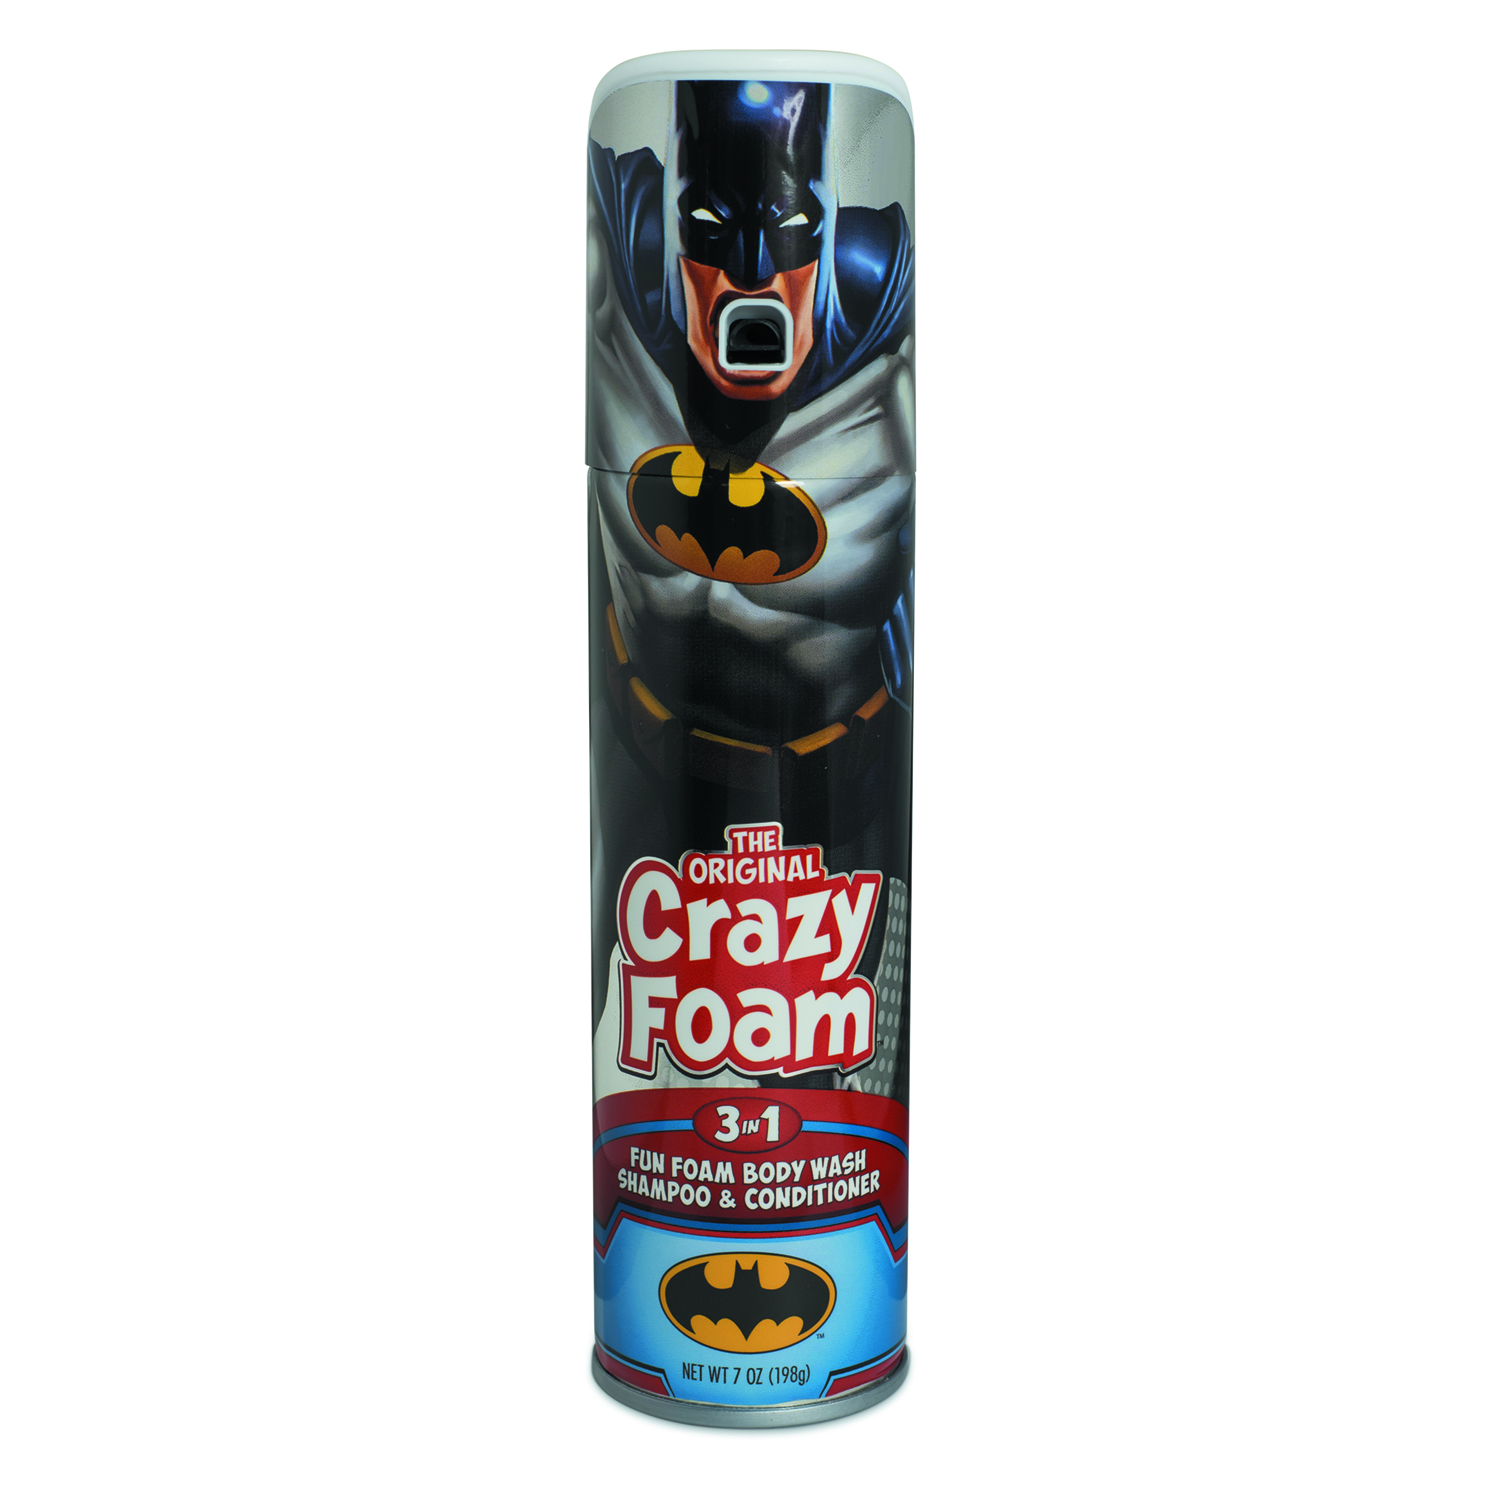 JUSTICE LEAGUE BATMAN CRAZY FOAM